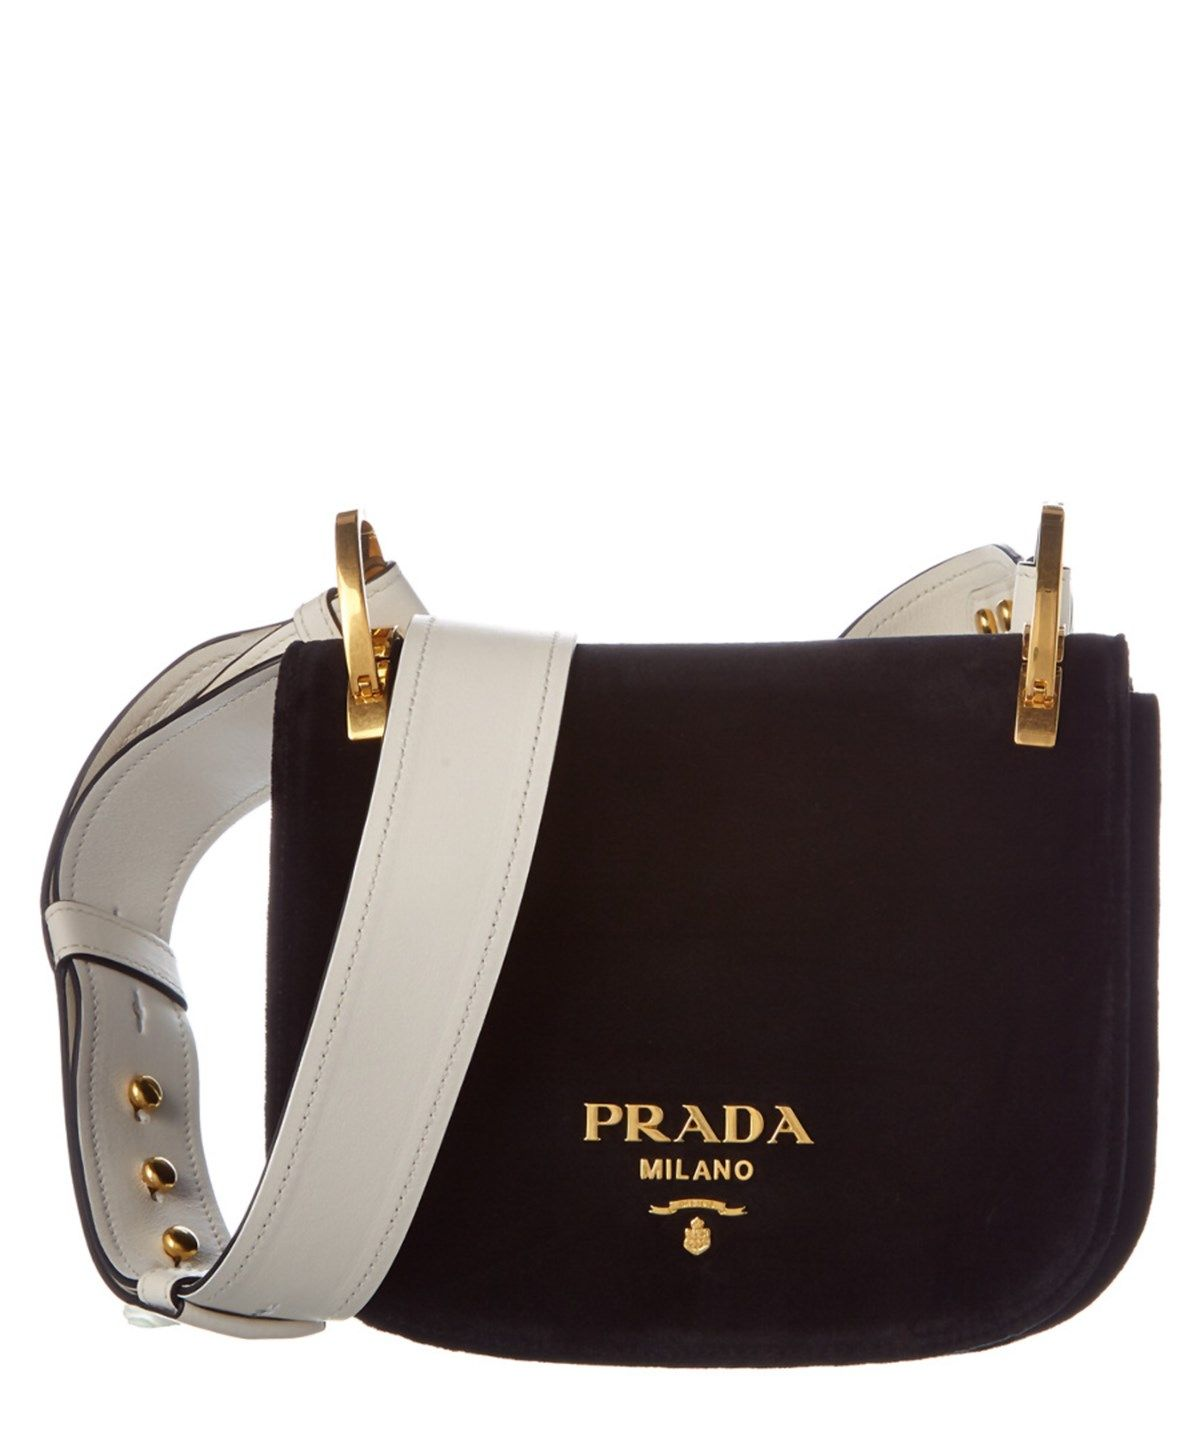 de3cd50e013a PRADA PRADA PIONNIERE VELVET SADDLE BAG .  prada  bags  shoulder bags   leather  velvet  lining